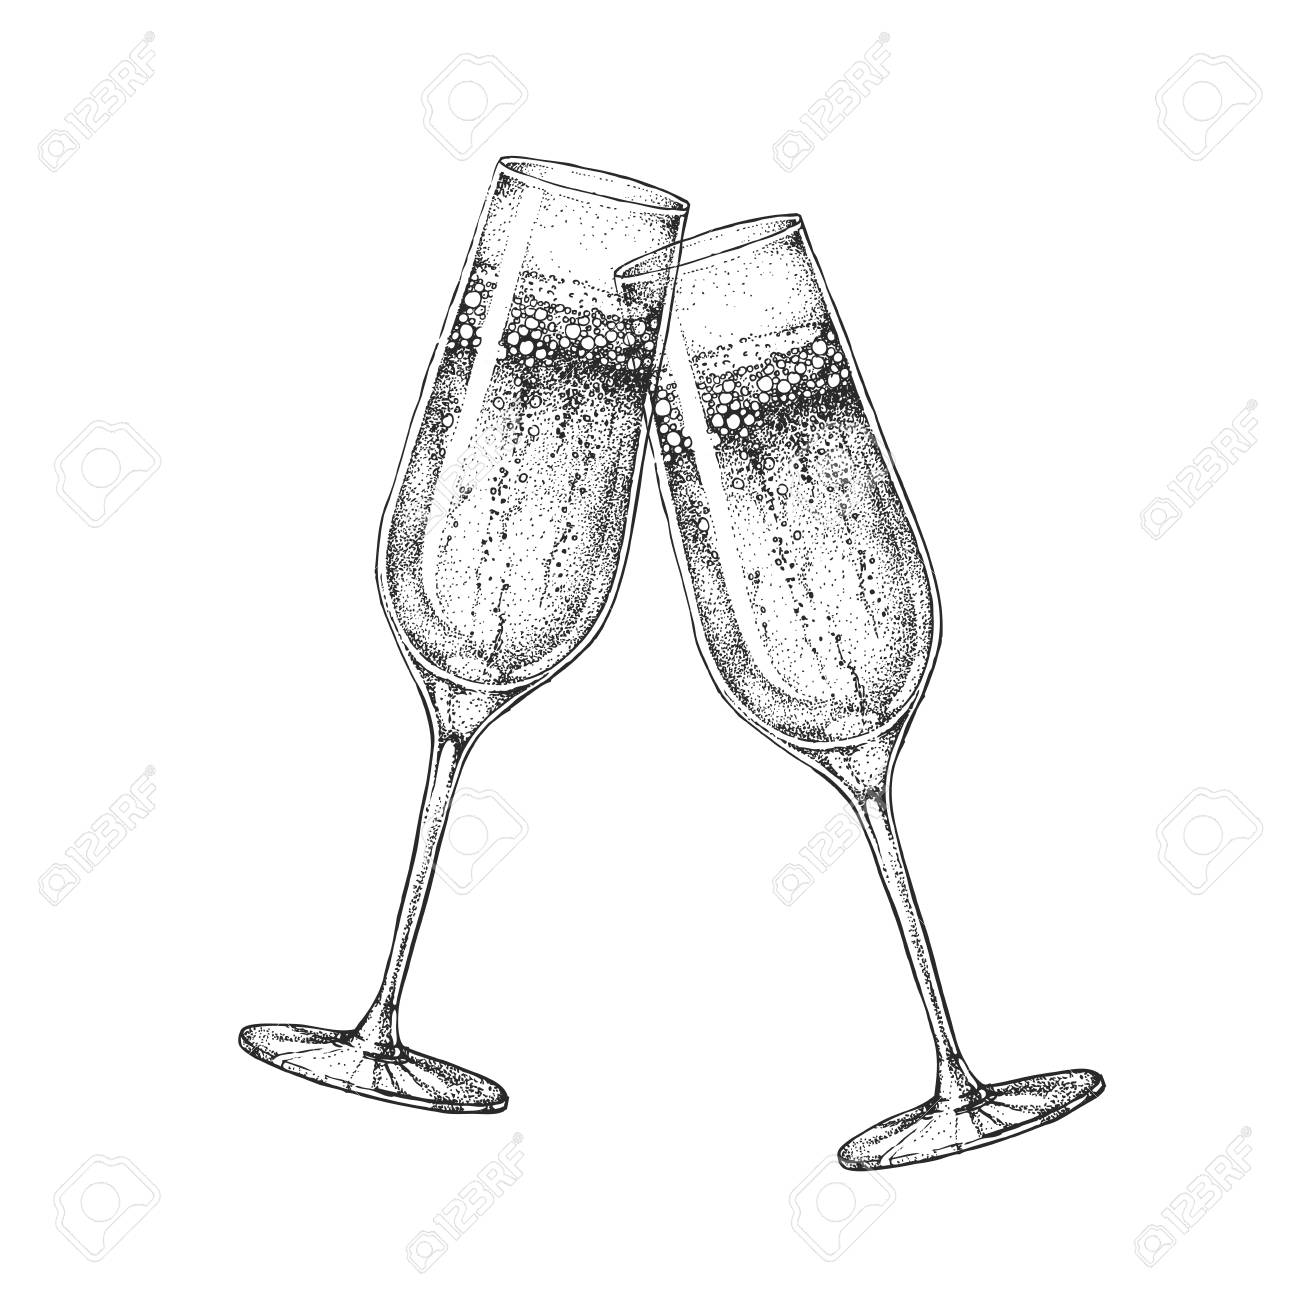 Two clinking champagne glasses - 111107260